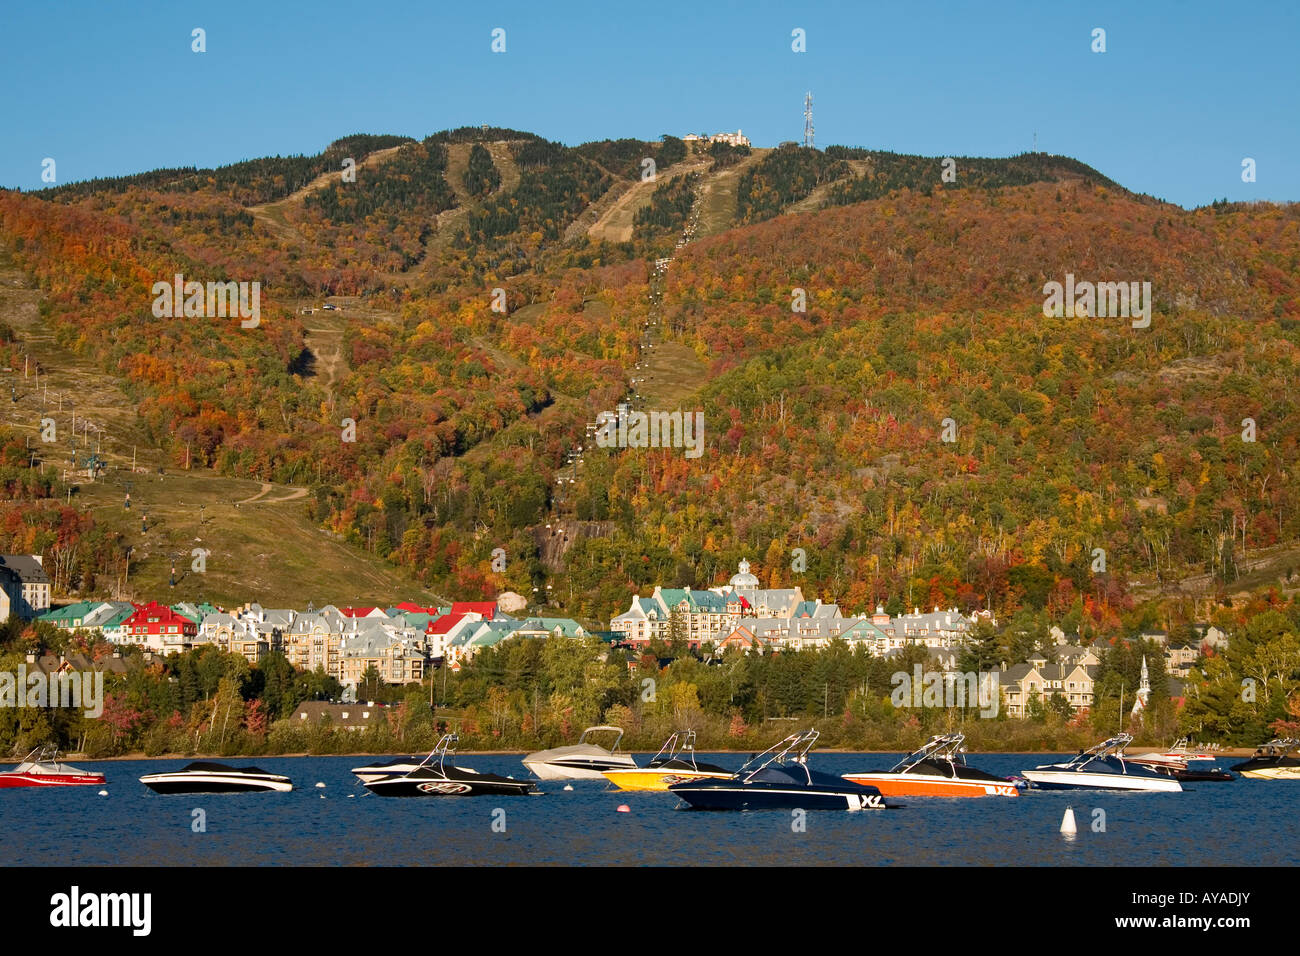 Mont Tremblant, Lac Tremblant, Quebec, Canada - Stock Image